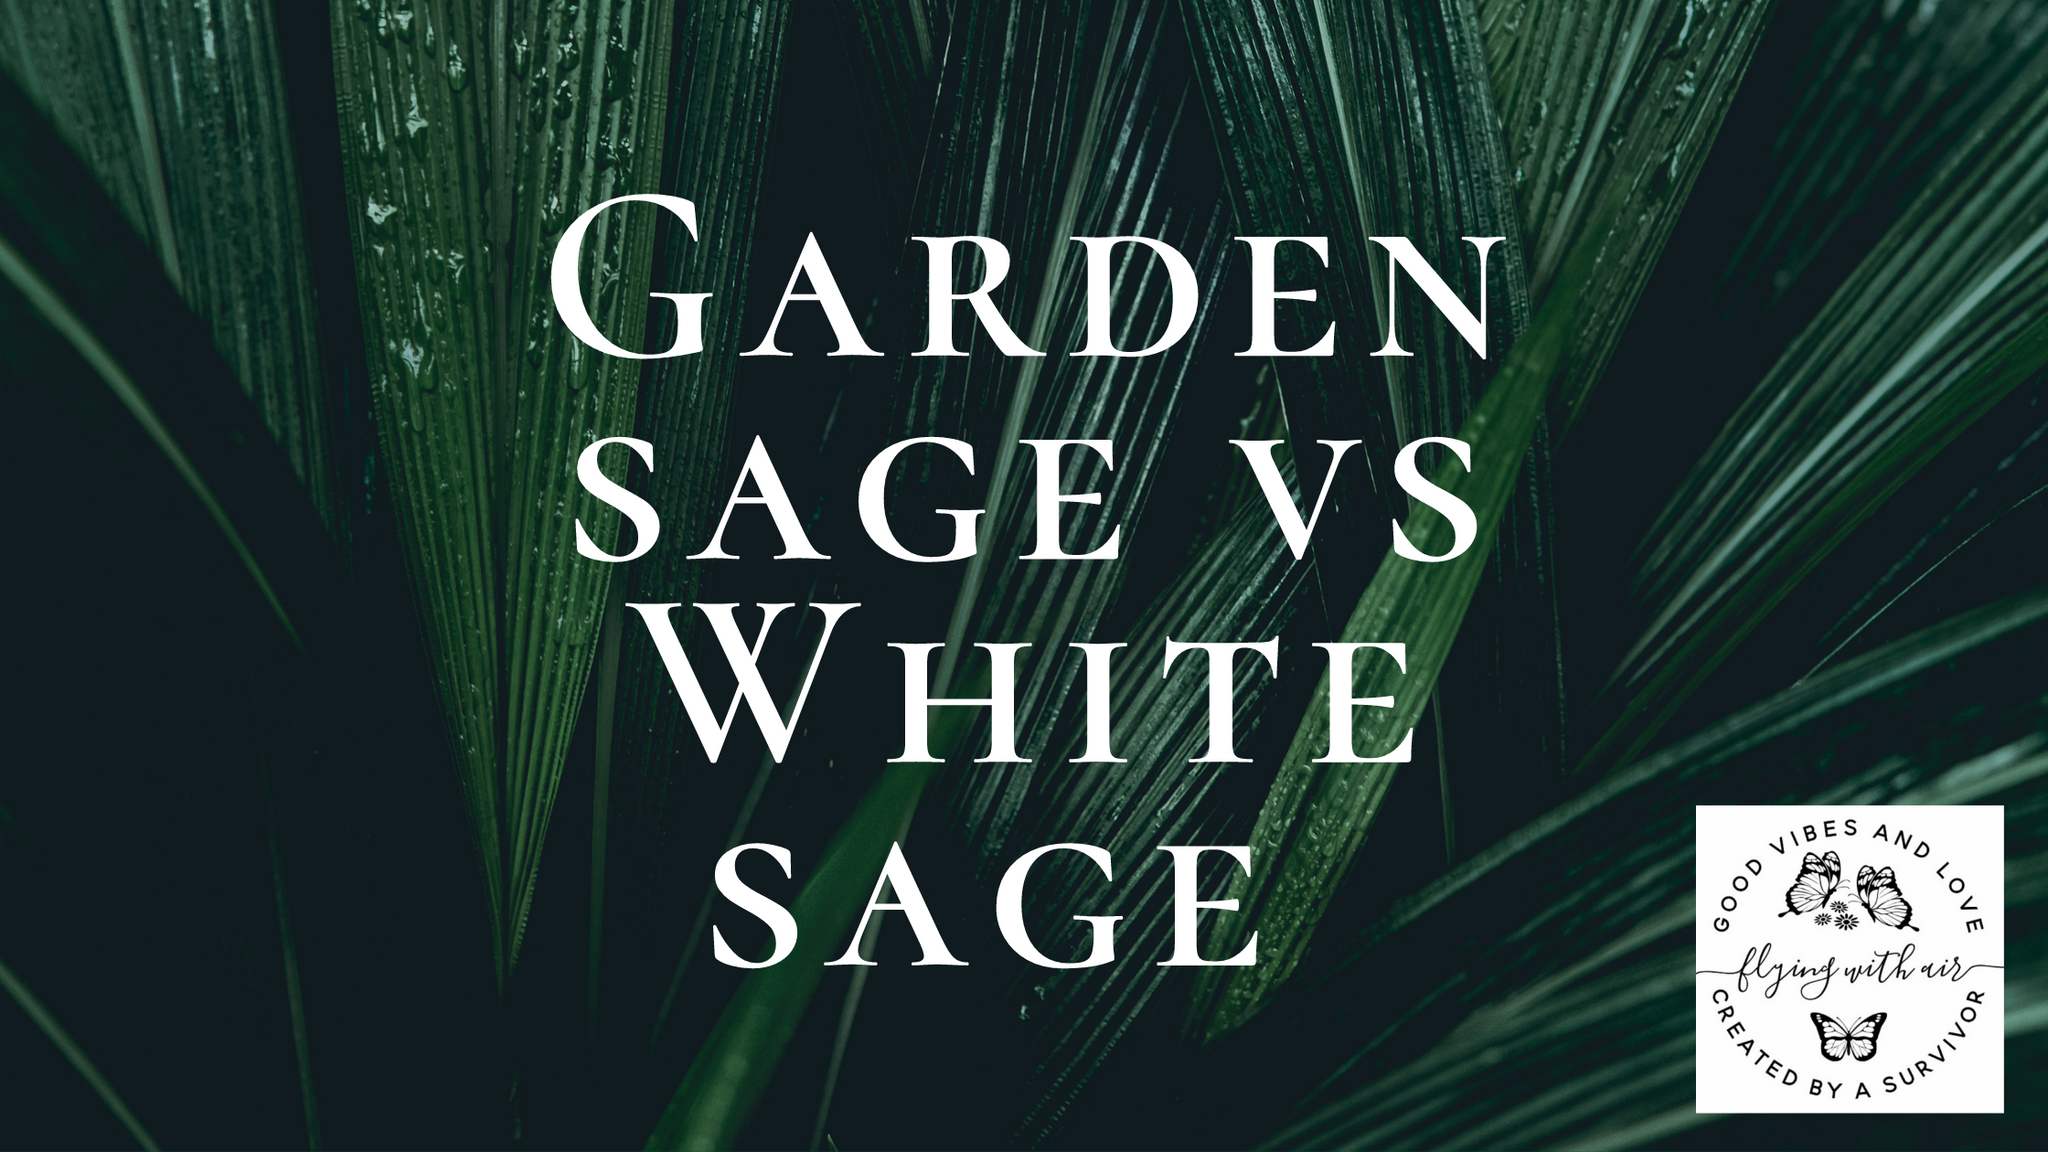 Differences between garden and white sage